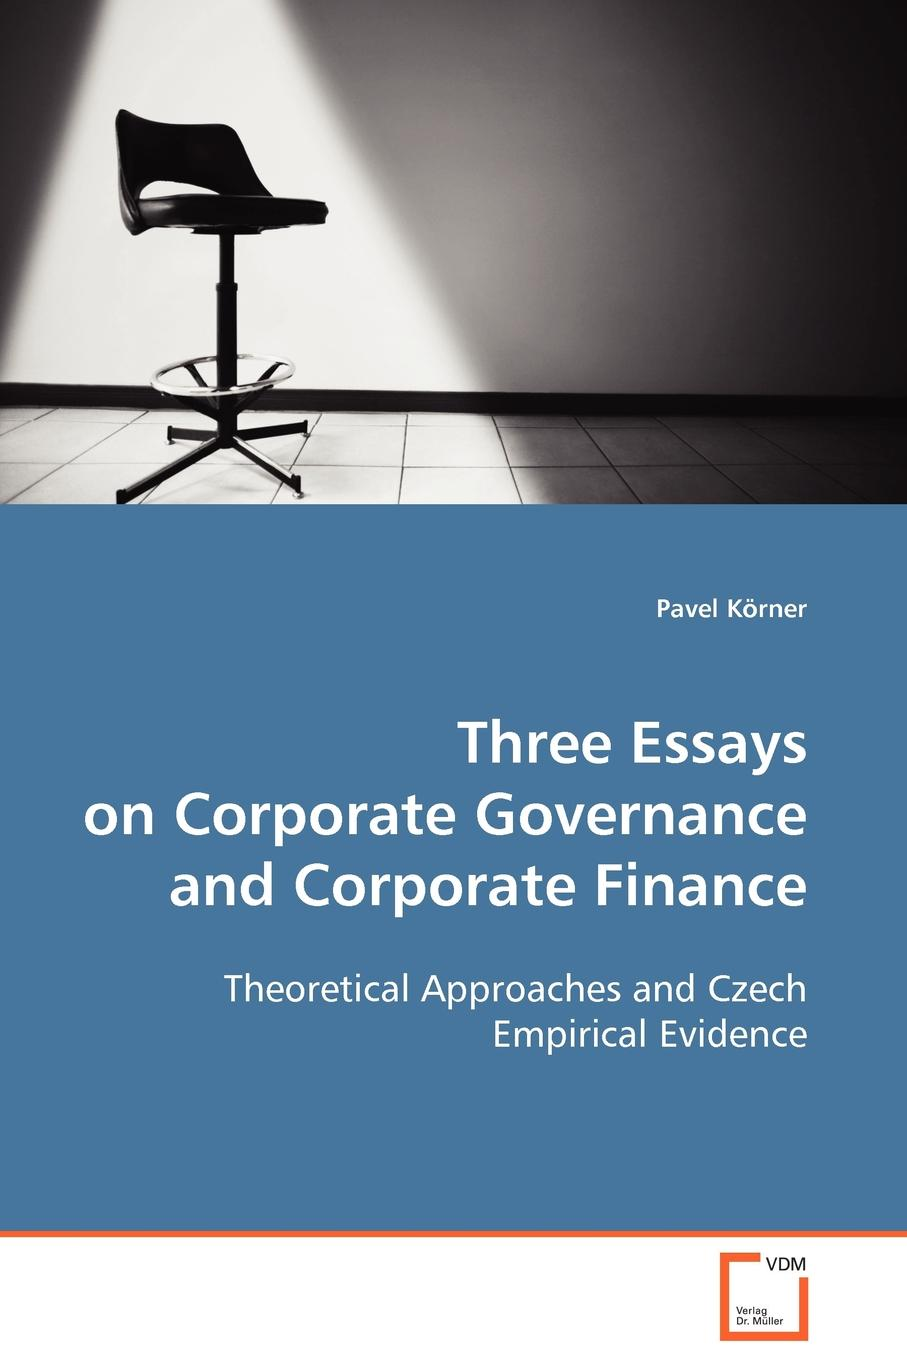 Pavel Körner Three Essays on Corporate Governance and Corporate Finance gerald s martin capital structure and corporate financing decisions theory evidence and practice